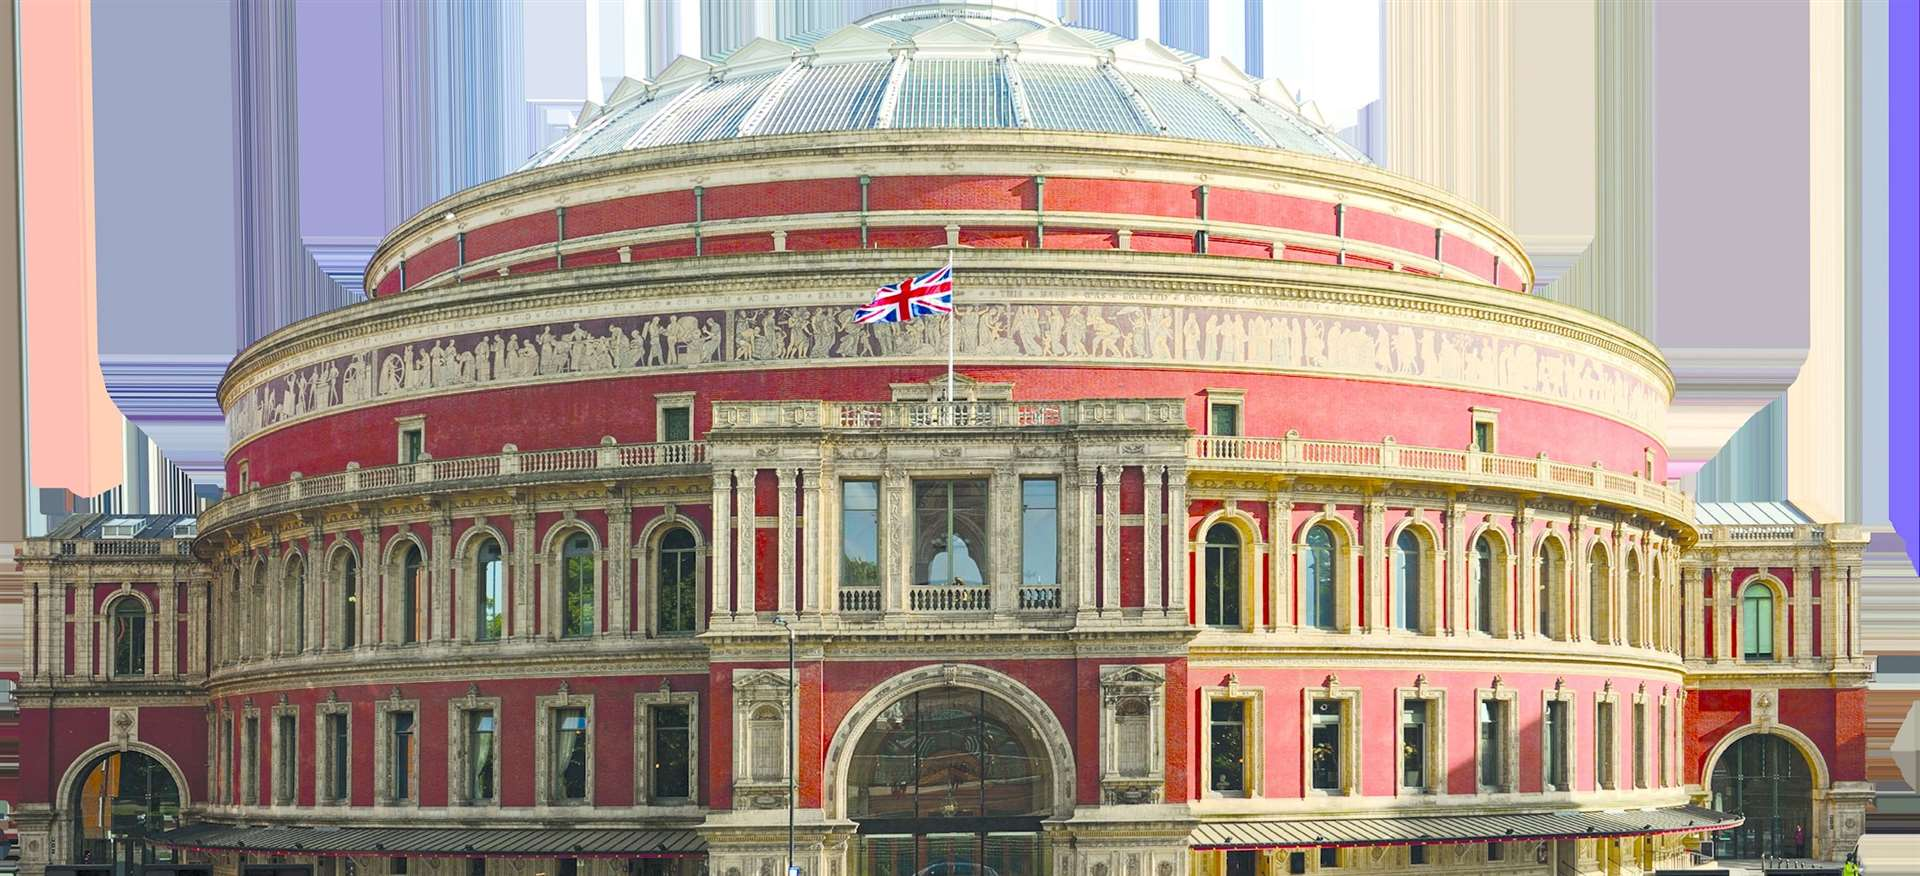 Sam Noakes and Dennis McCann will box at the magnificent Royal Albert Hall in London